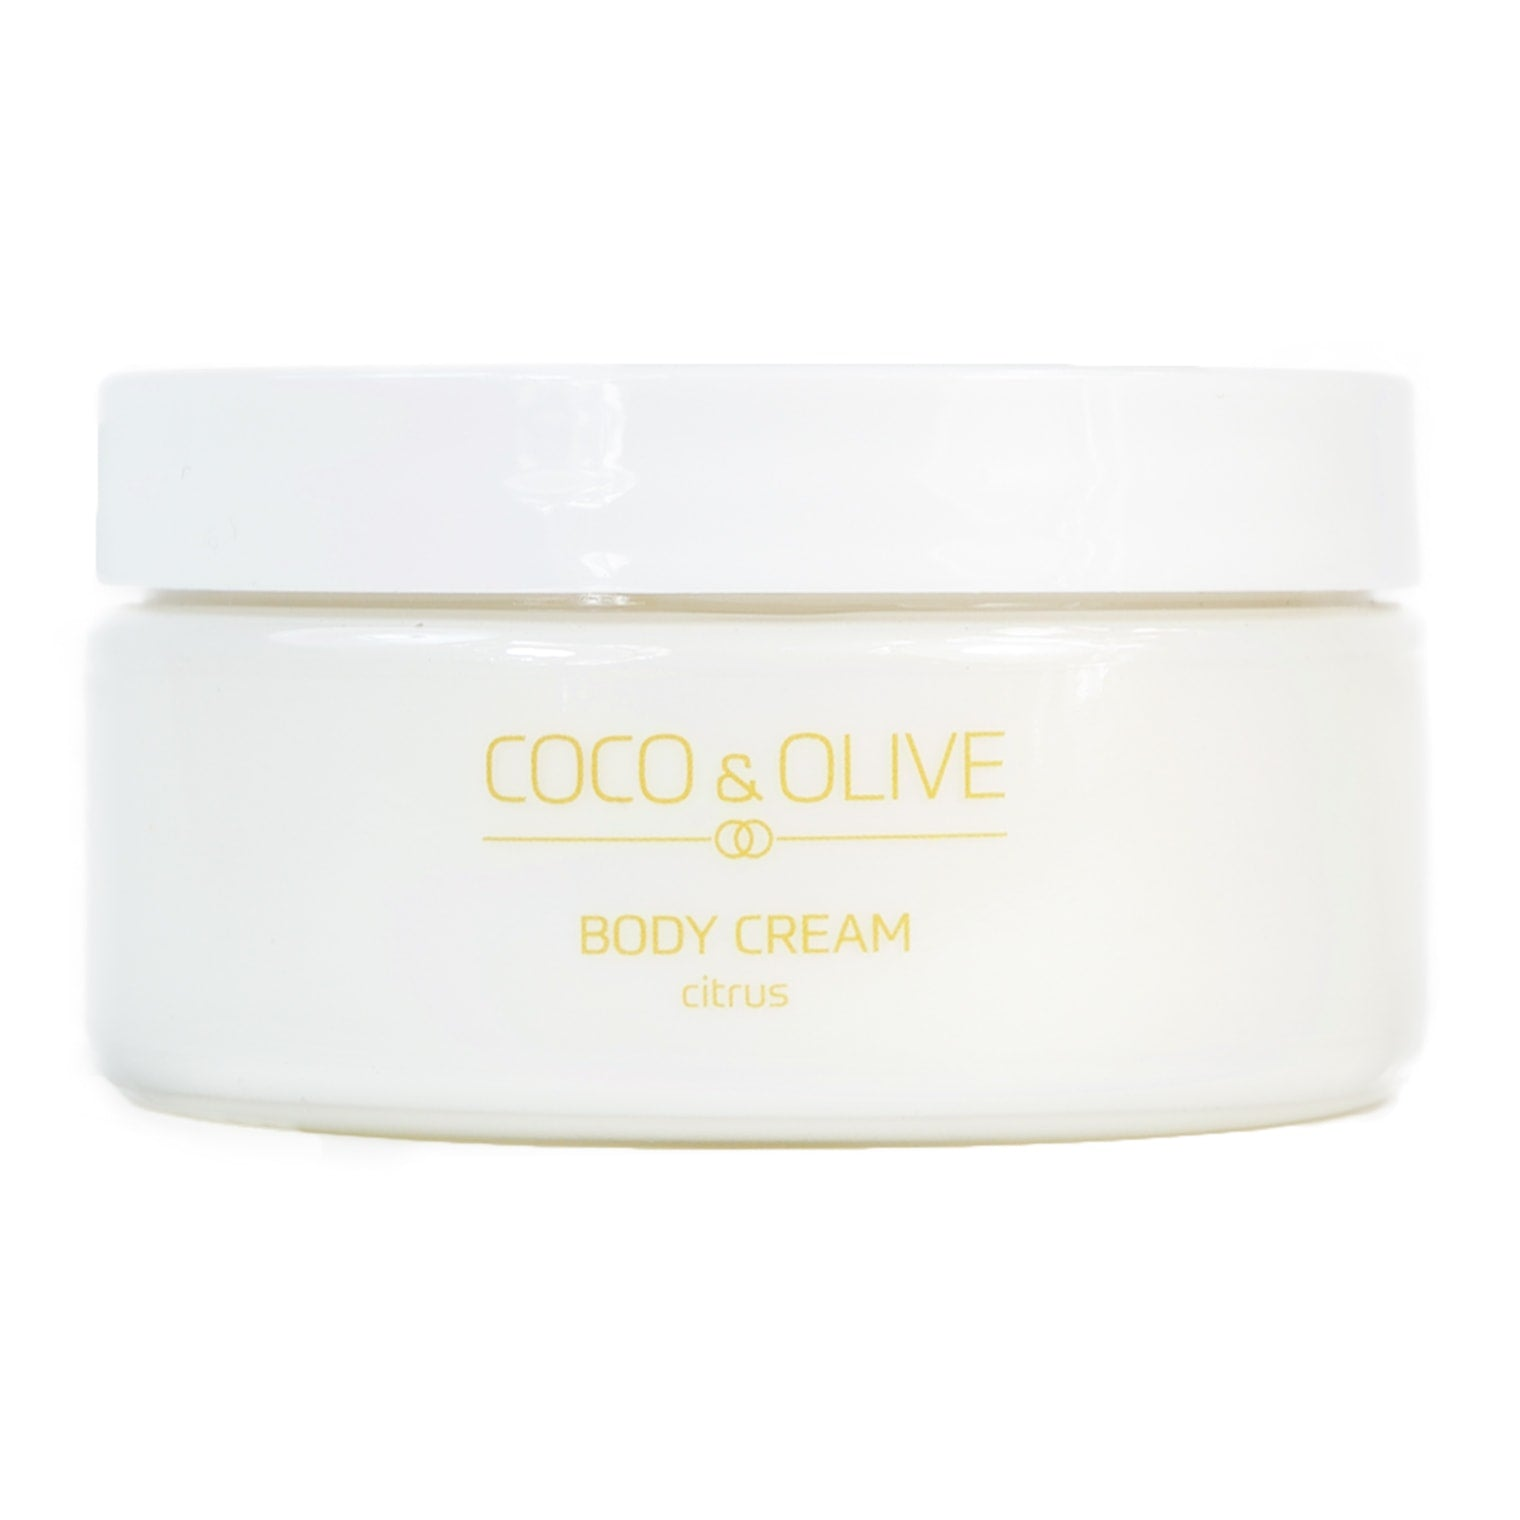 Body Cream: Citrus